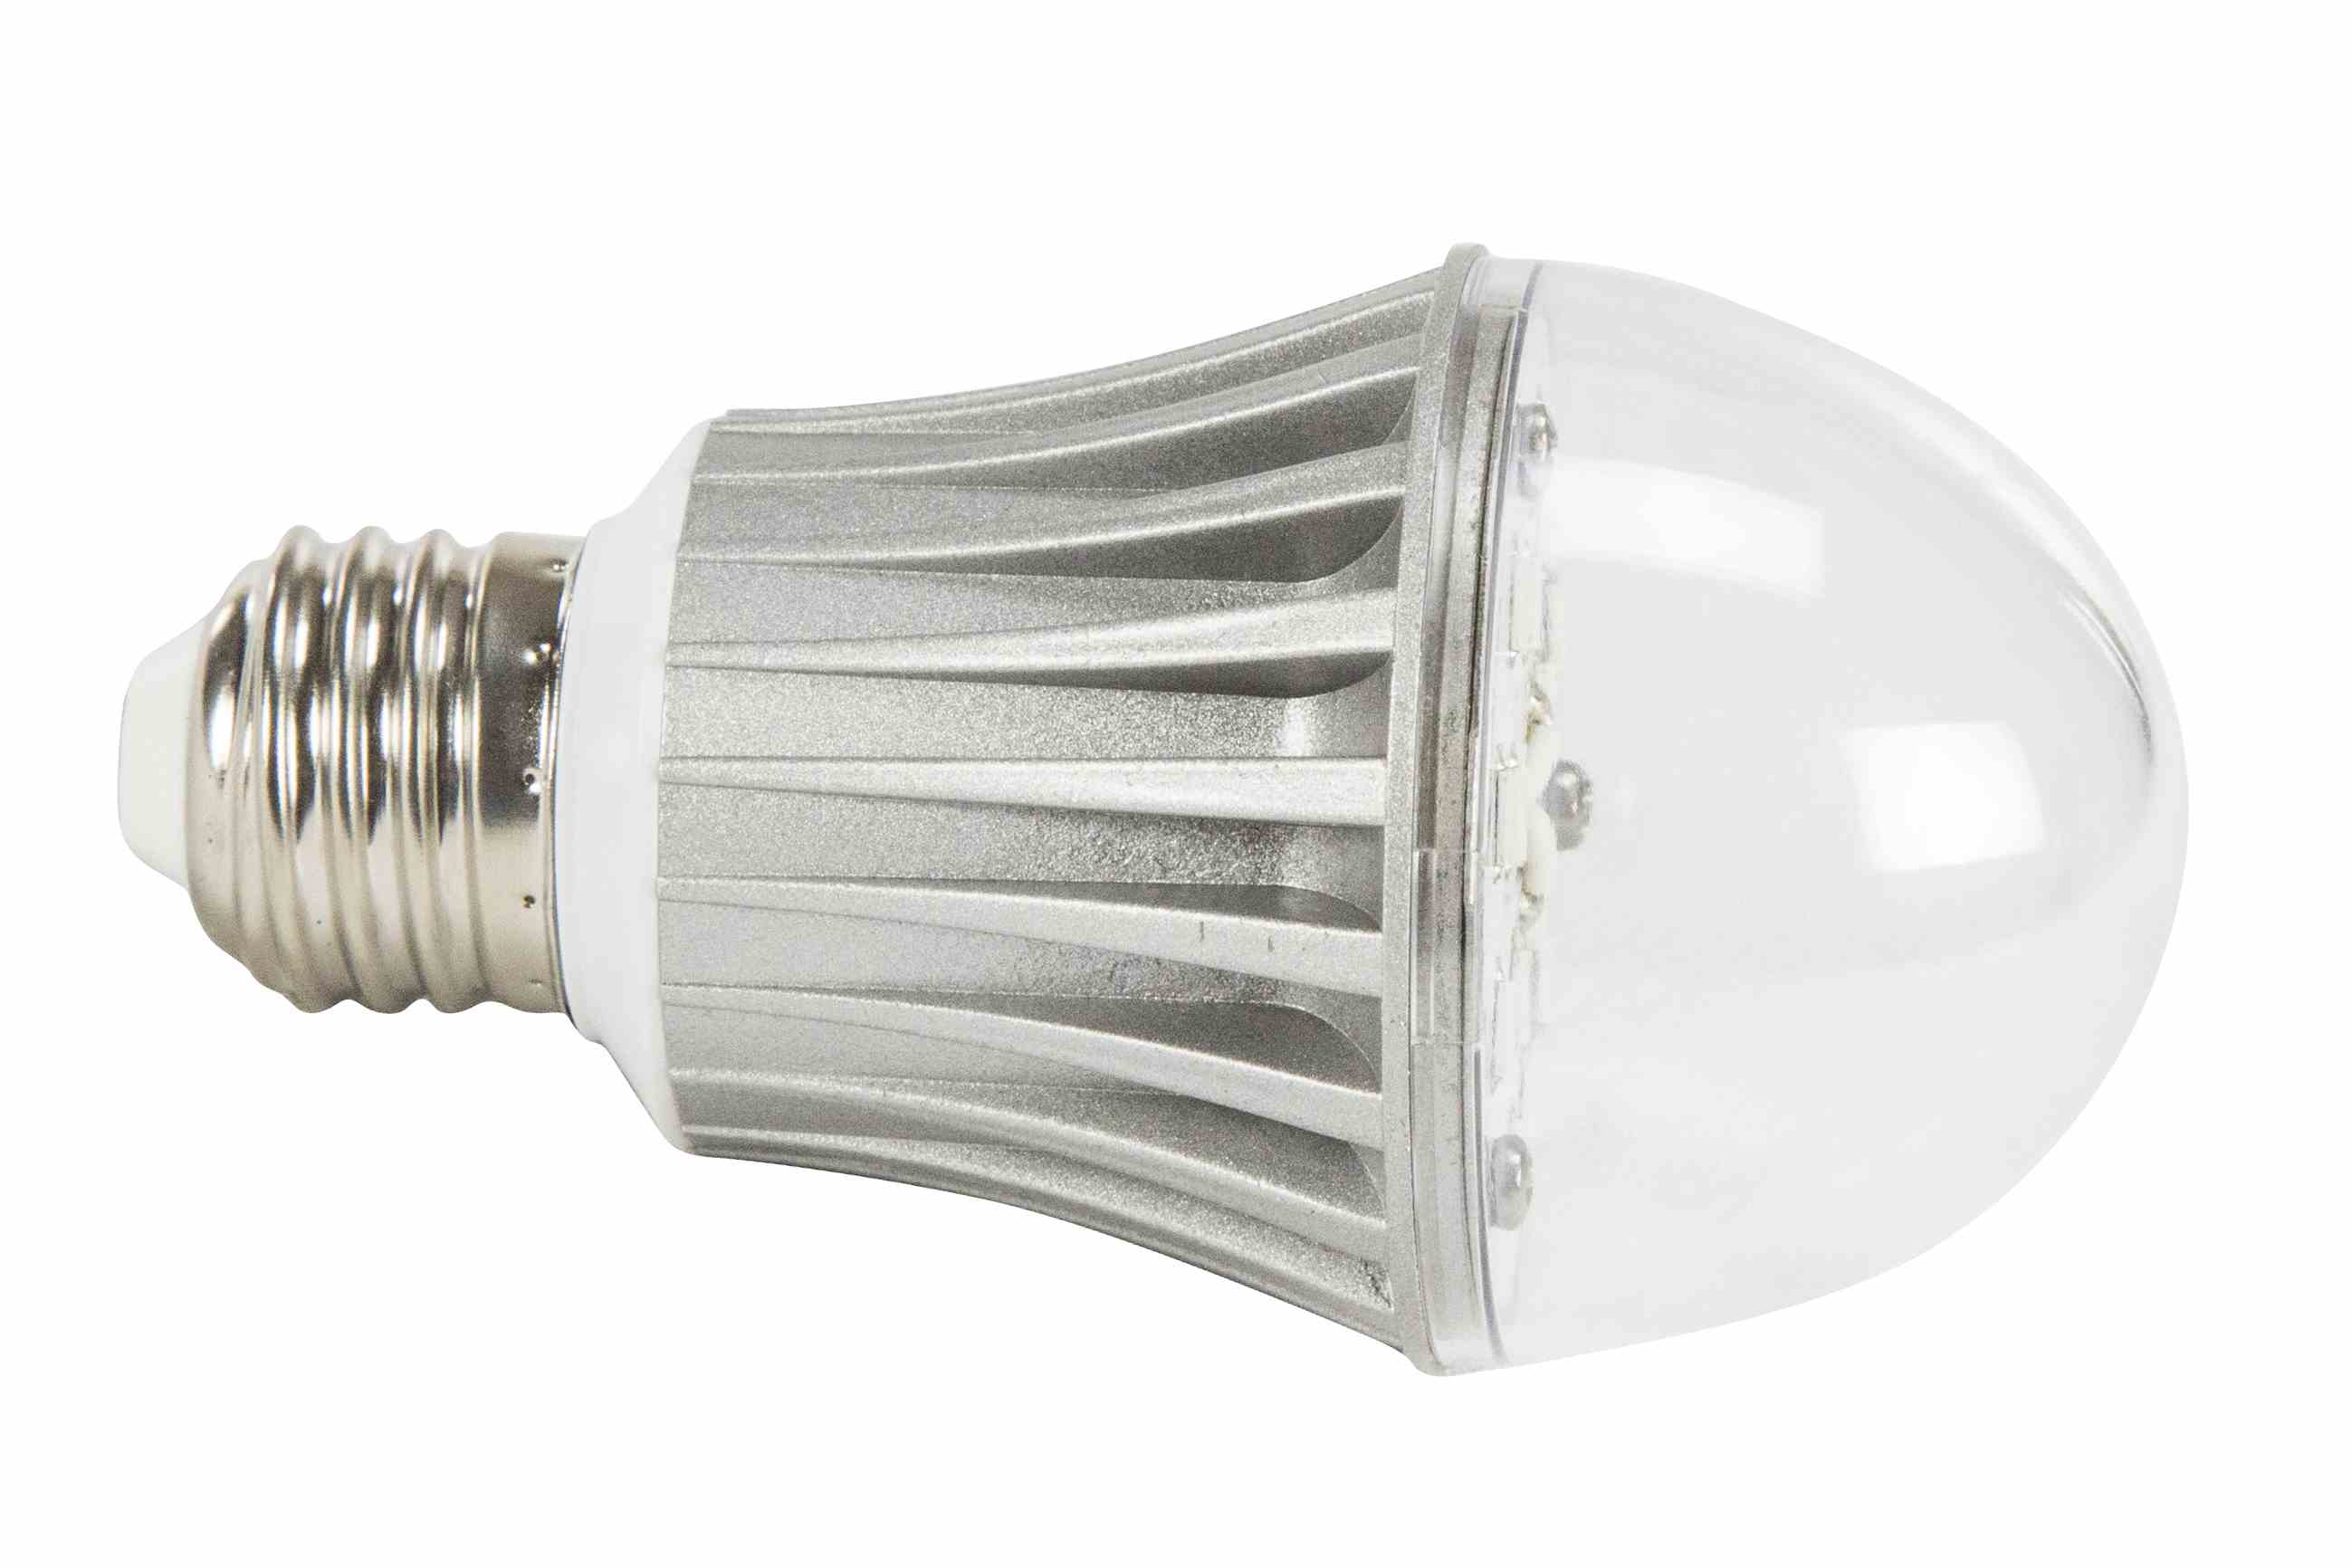 Colored Led Light Bulb 7 Watt Led A19 Style Replacement